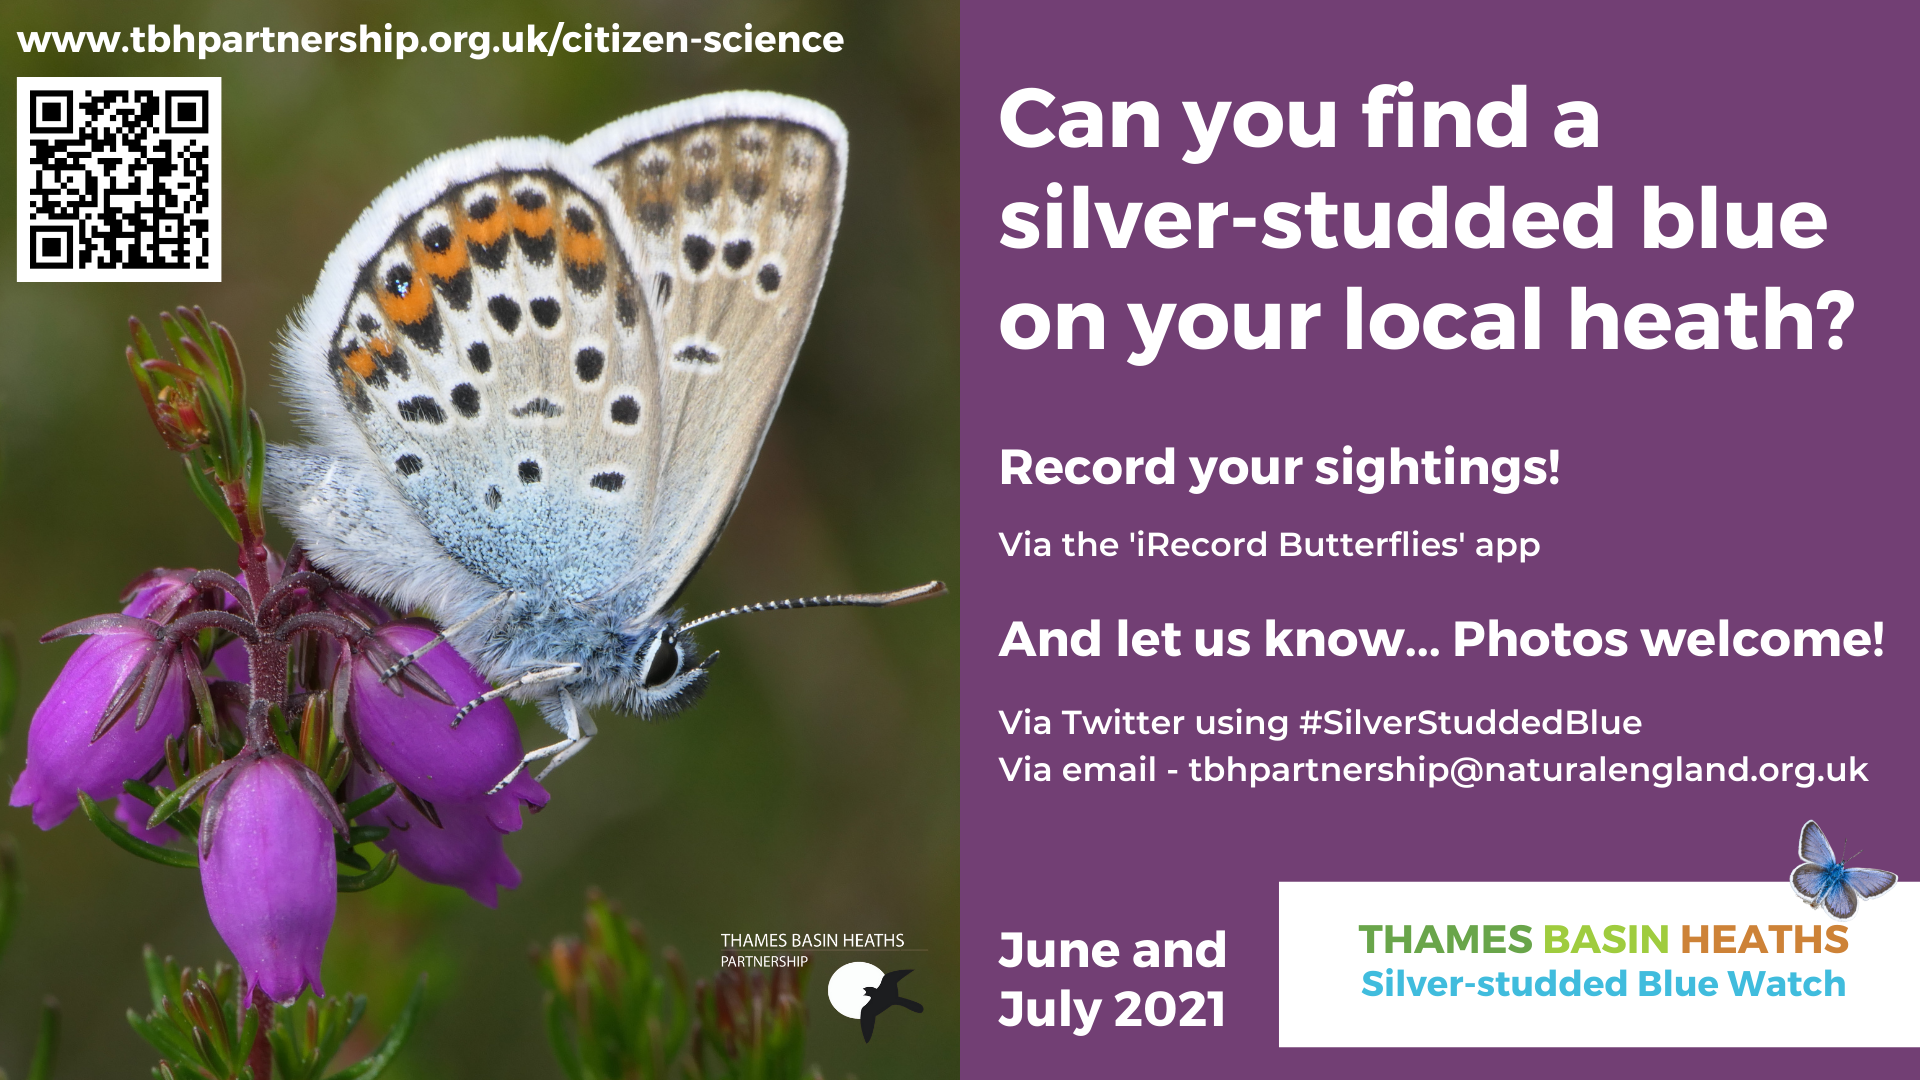 Have you seen a silver-studded blue?